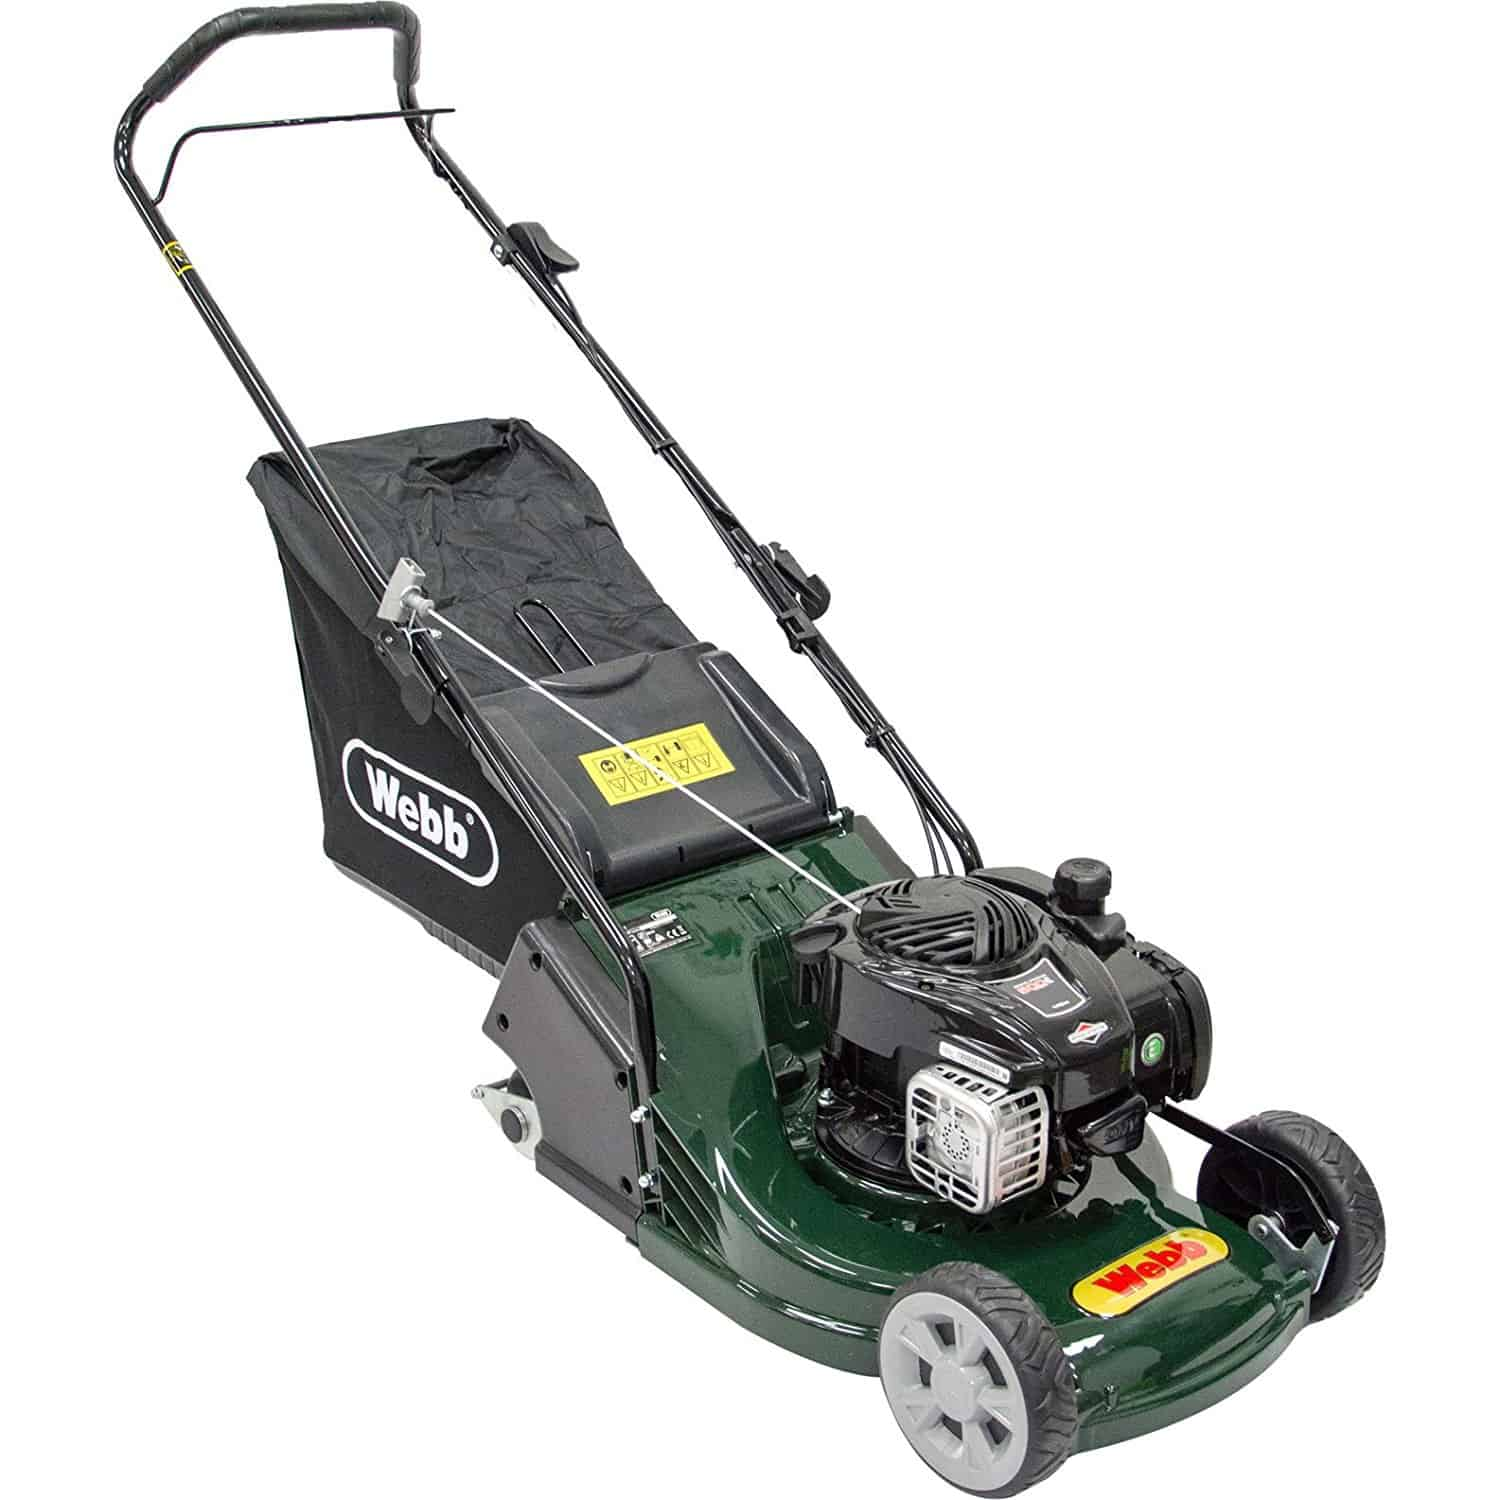 Best Petrol Lawn Mower with Roller – Webb